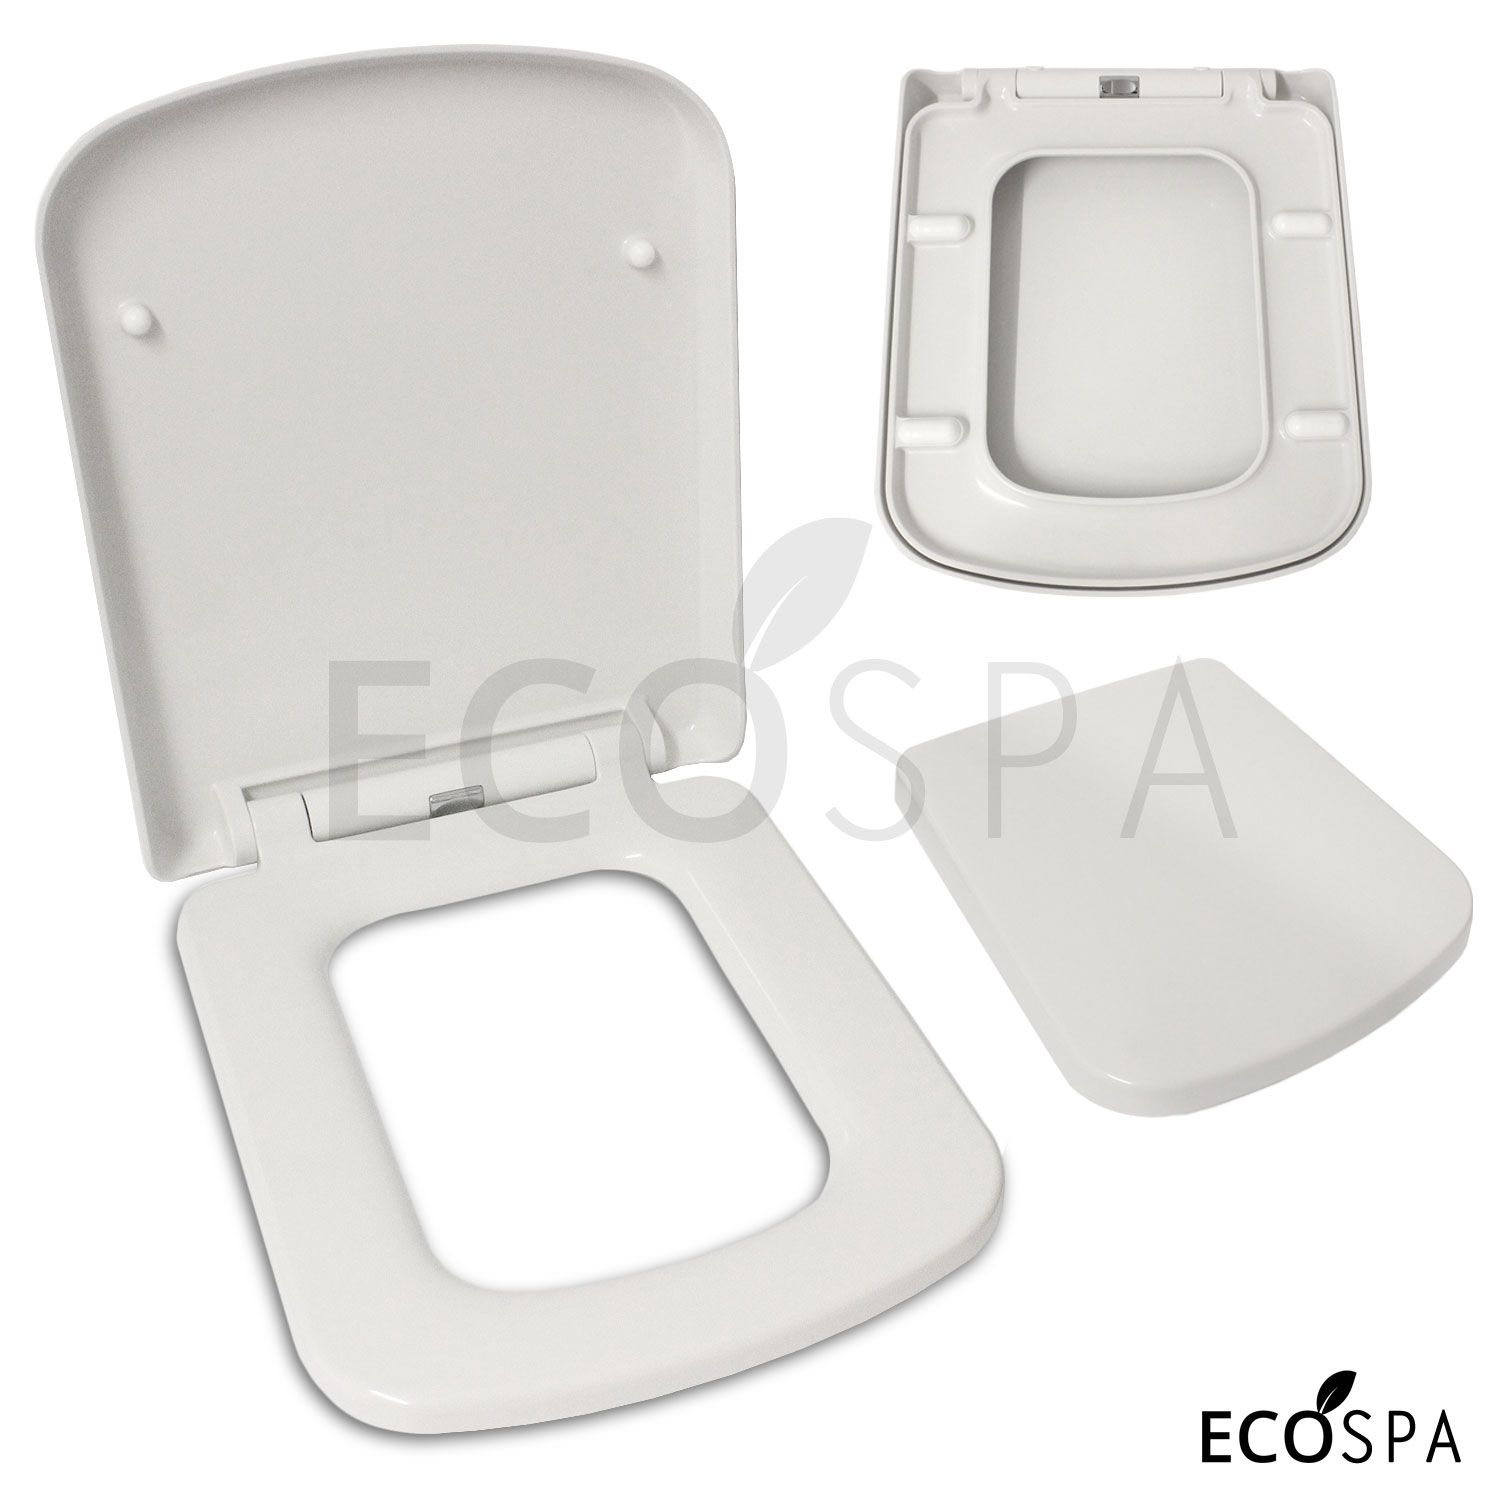 luxury square design toilet seat with top fixing hinges. Black Bedroom Furniture Sets. Home Design Ideas